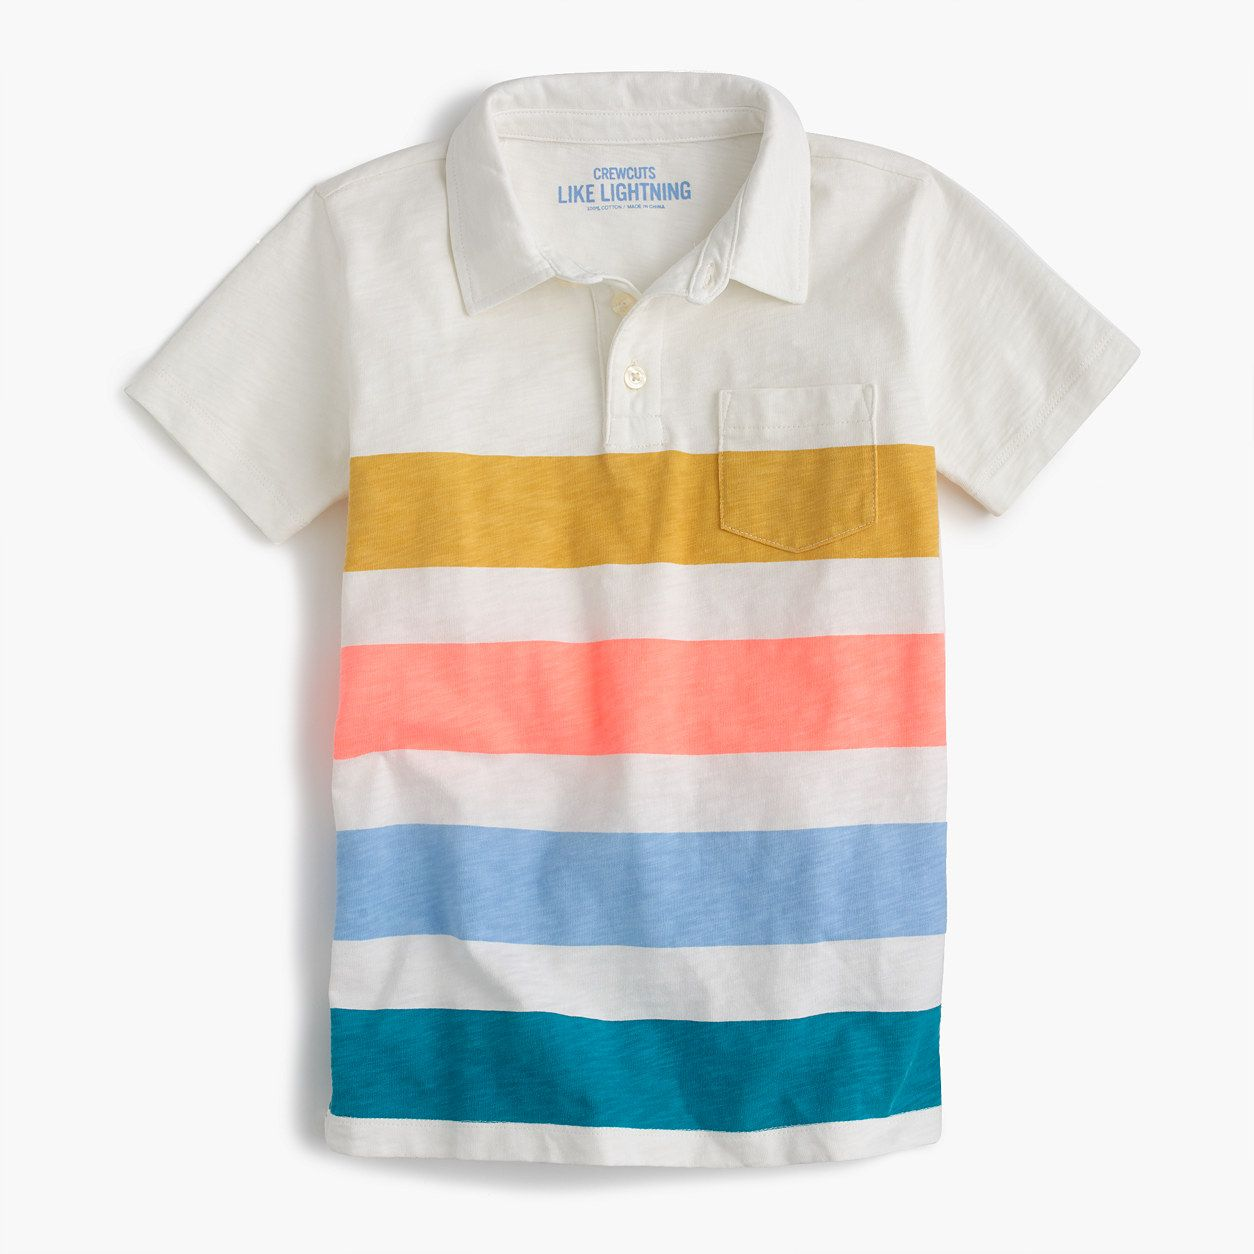 961bffc96d8e crewcuts Boys Short-Sleeve Polo Shirt In Quad Stripe (Size 14 Kid ...